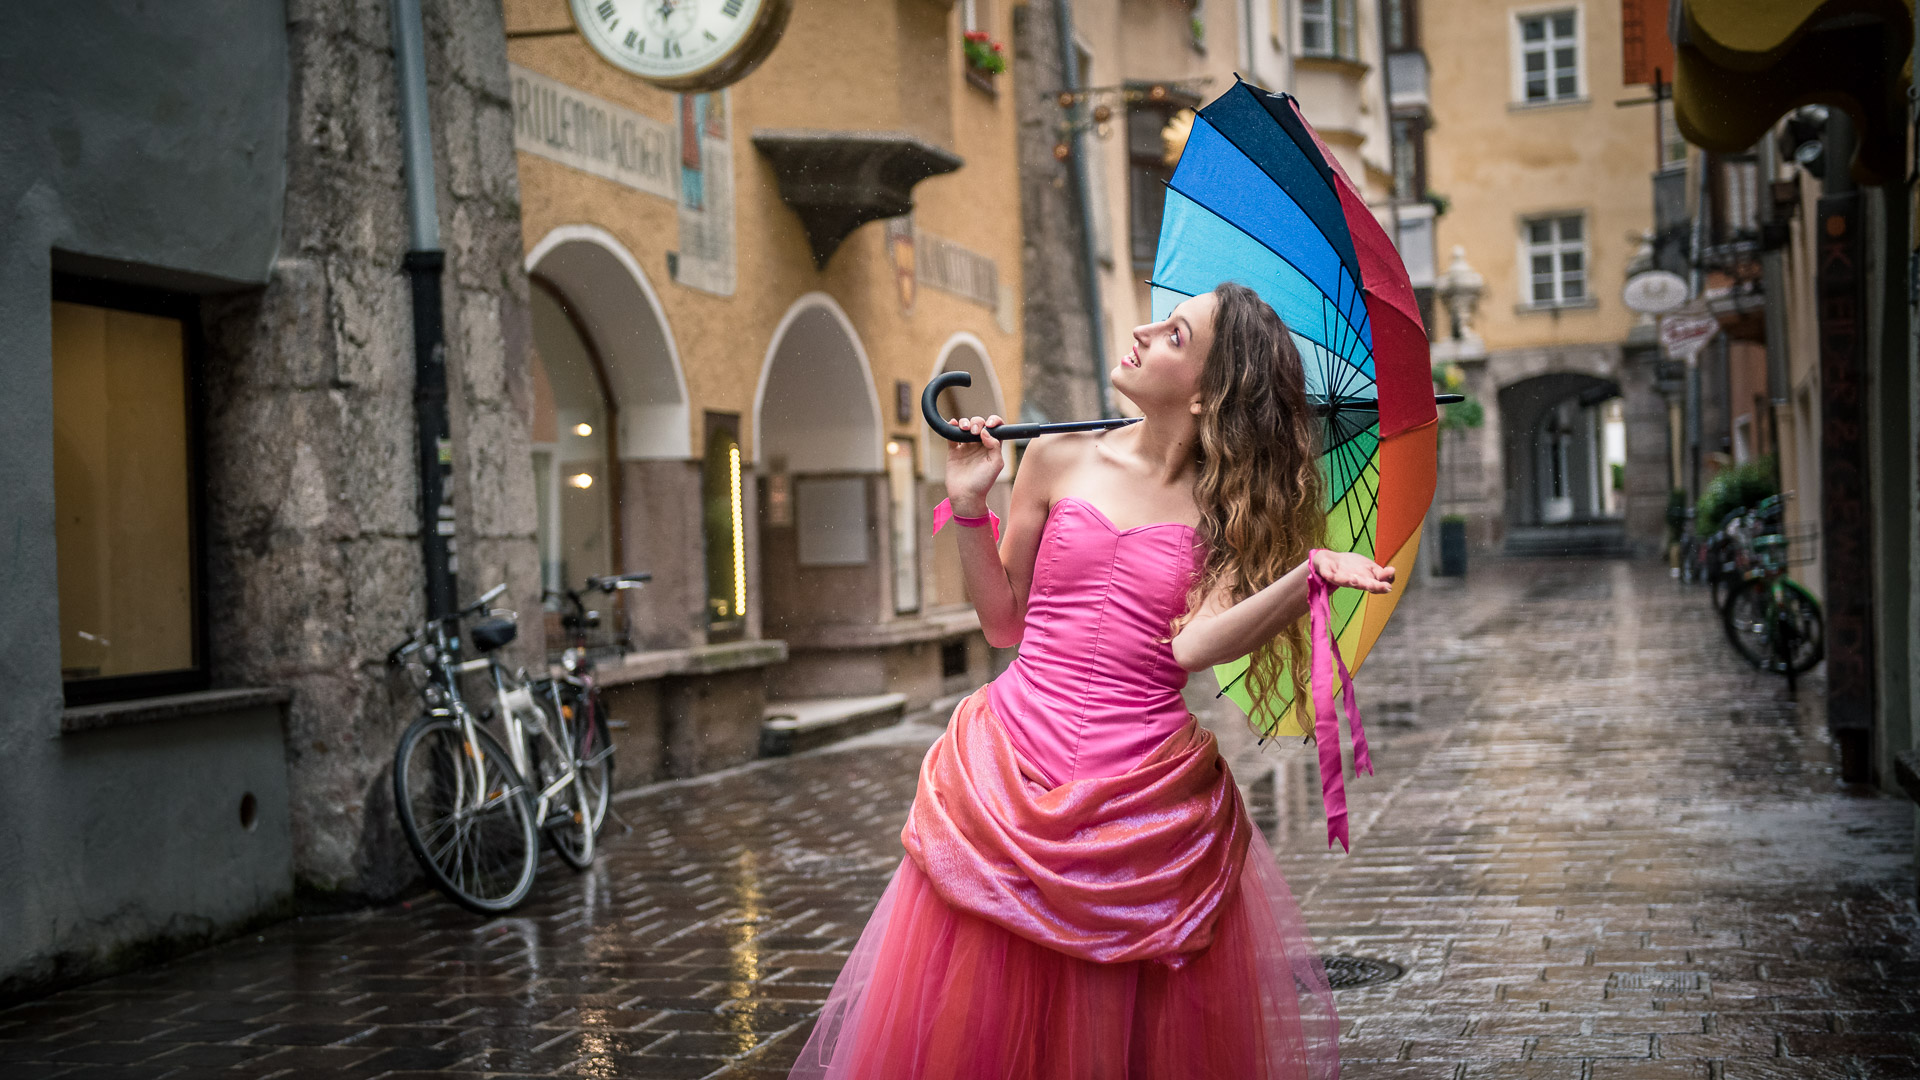 girl, pink dress, rain, umbrella, rainbow umbrella, old city, cobbled street, tulle skirt, corset